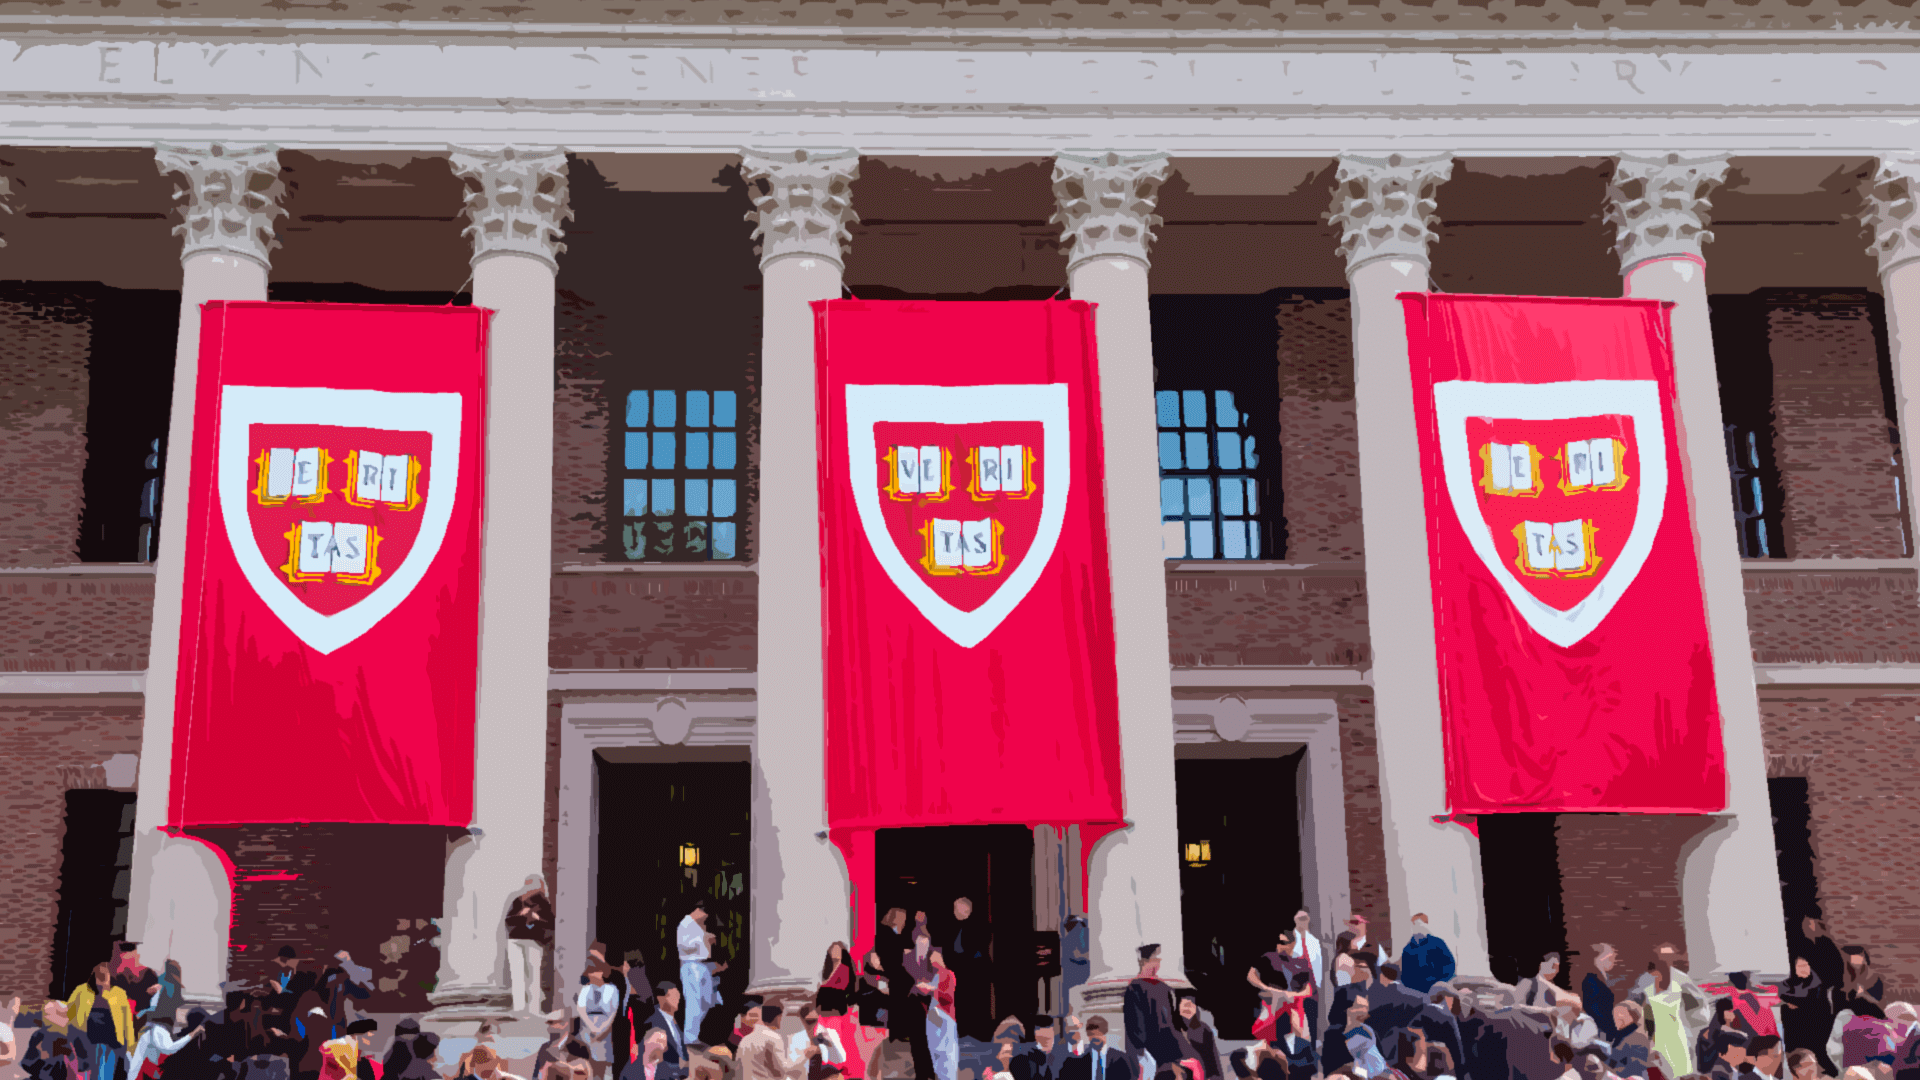 Harvard University. Seize the endowments.